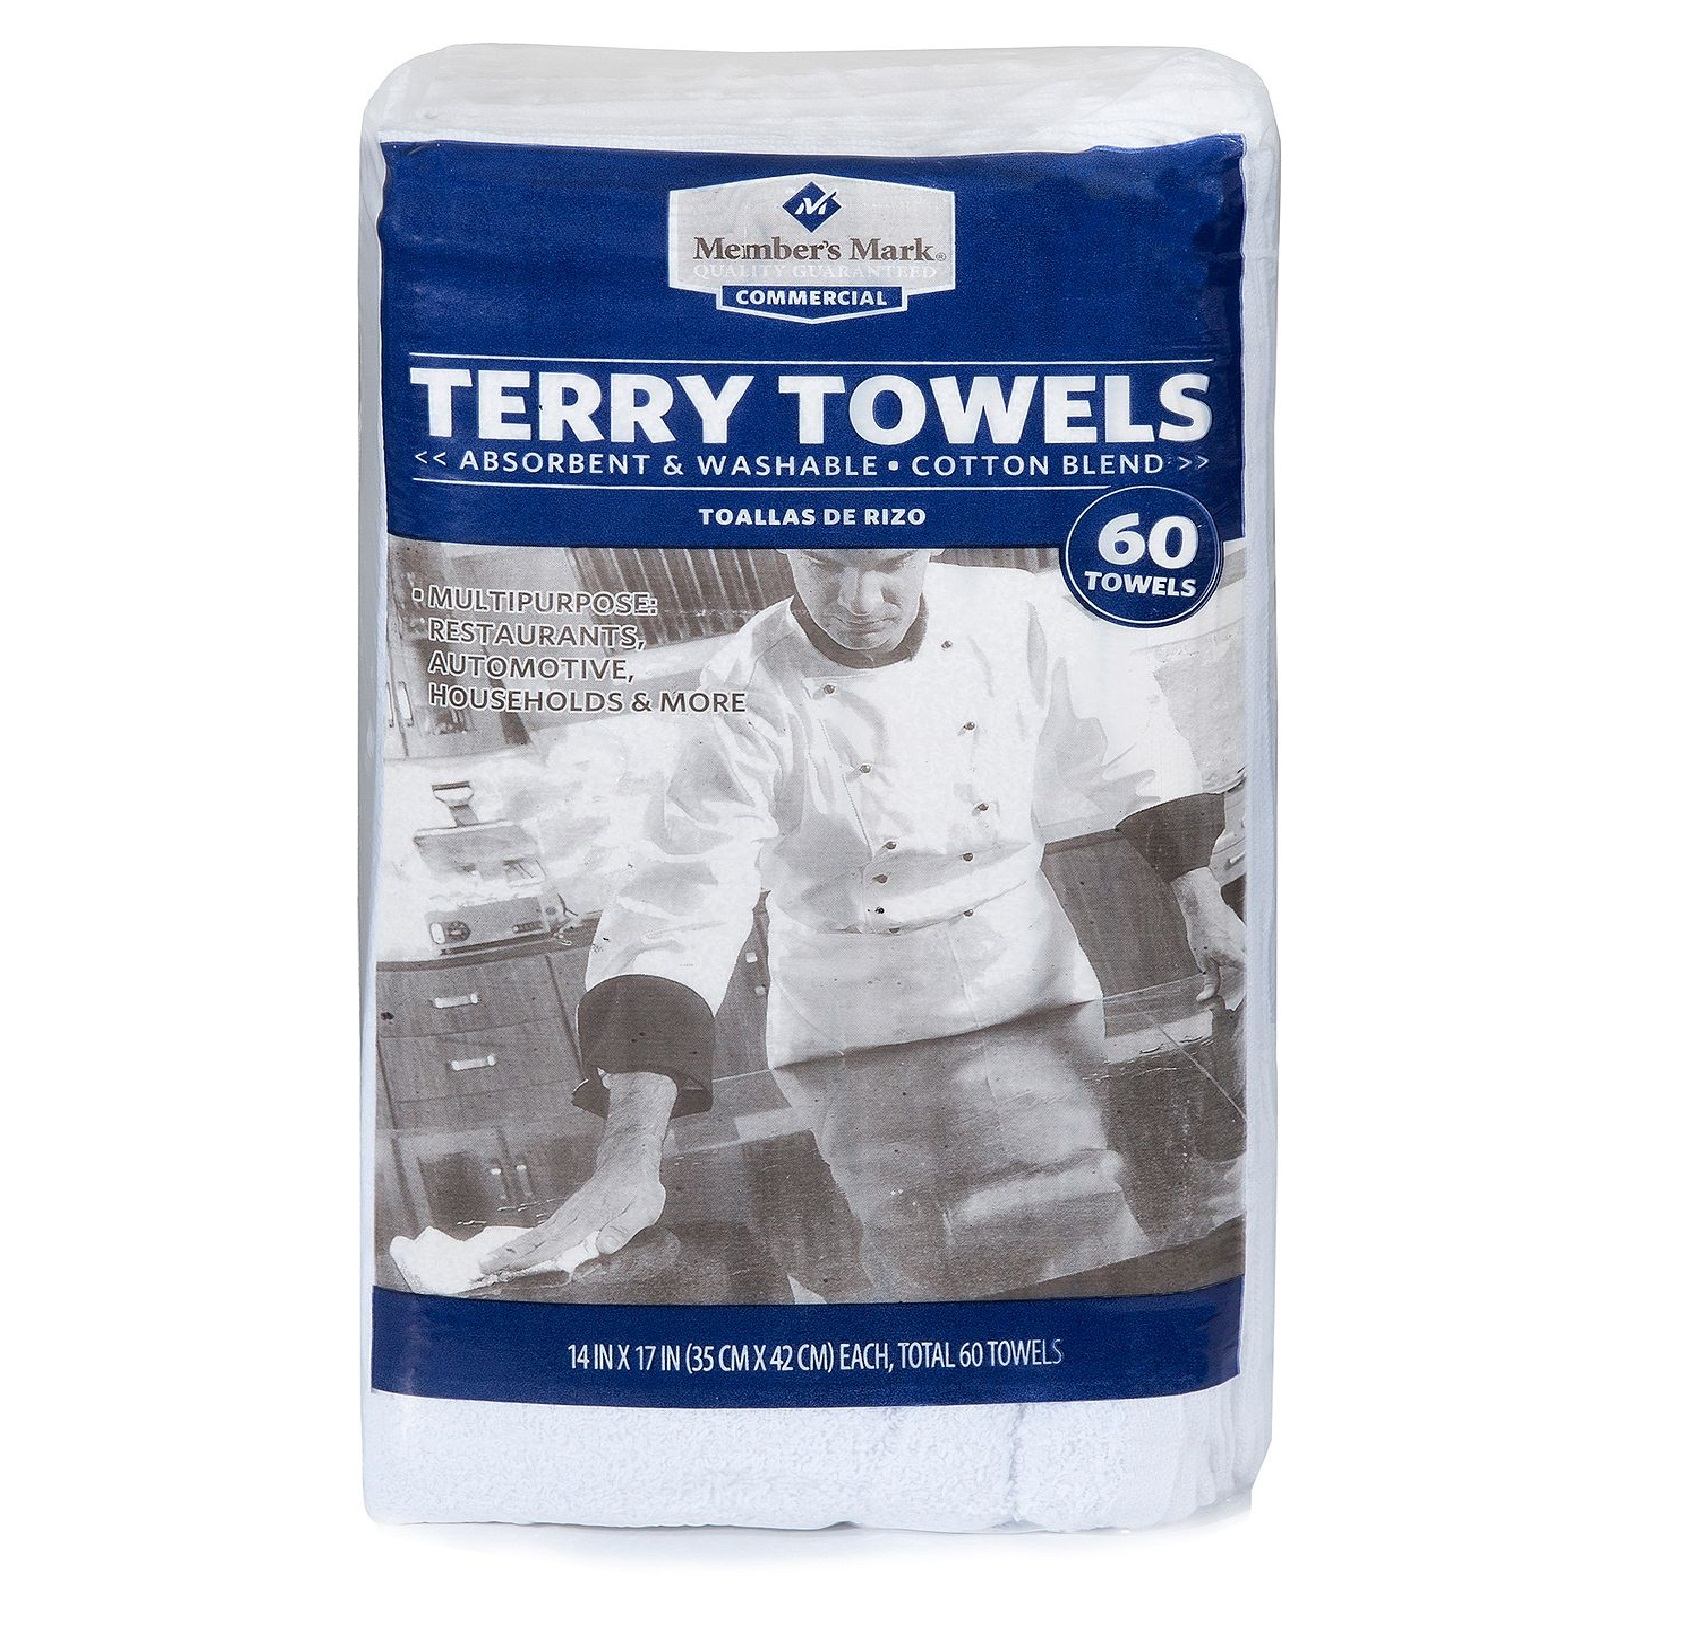 Member's Mark Terry Towels 60 pk.